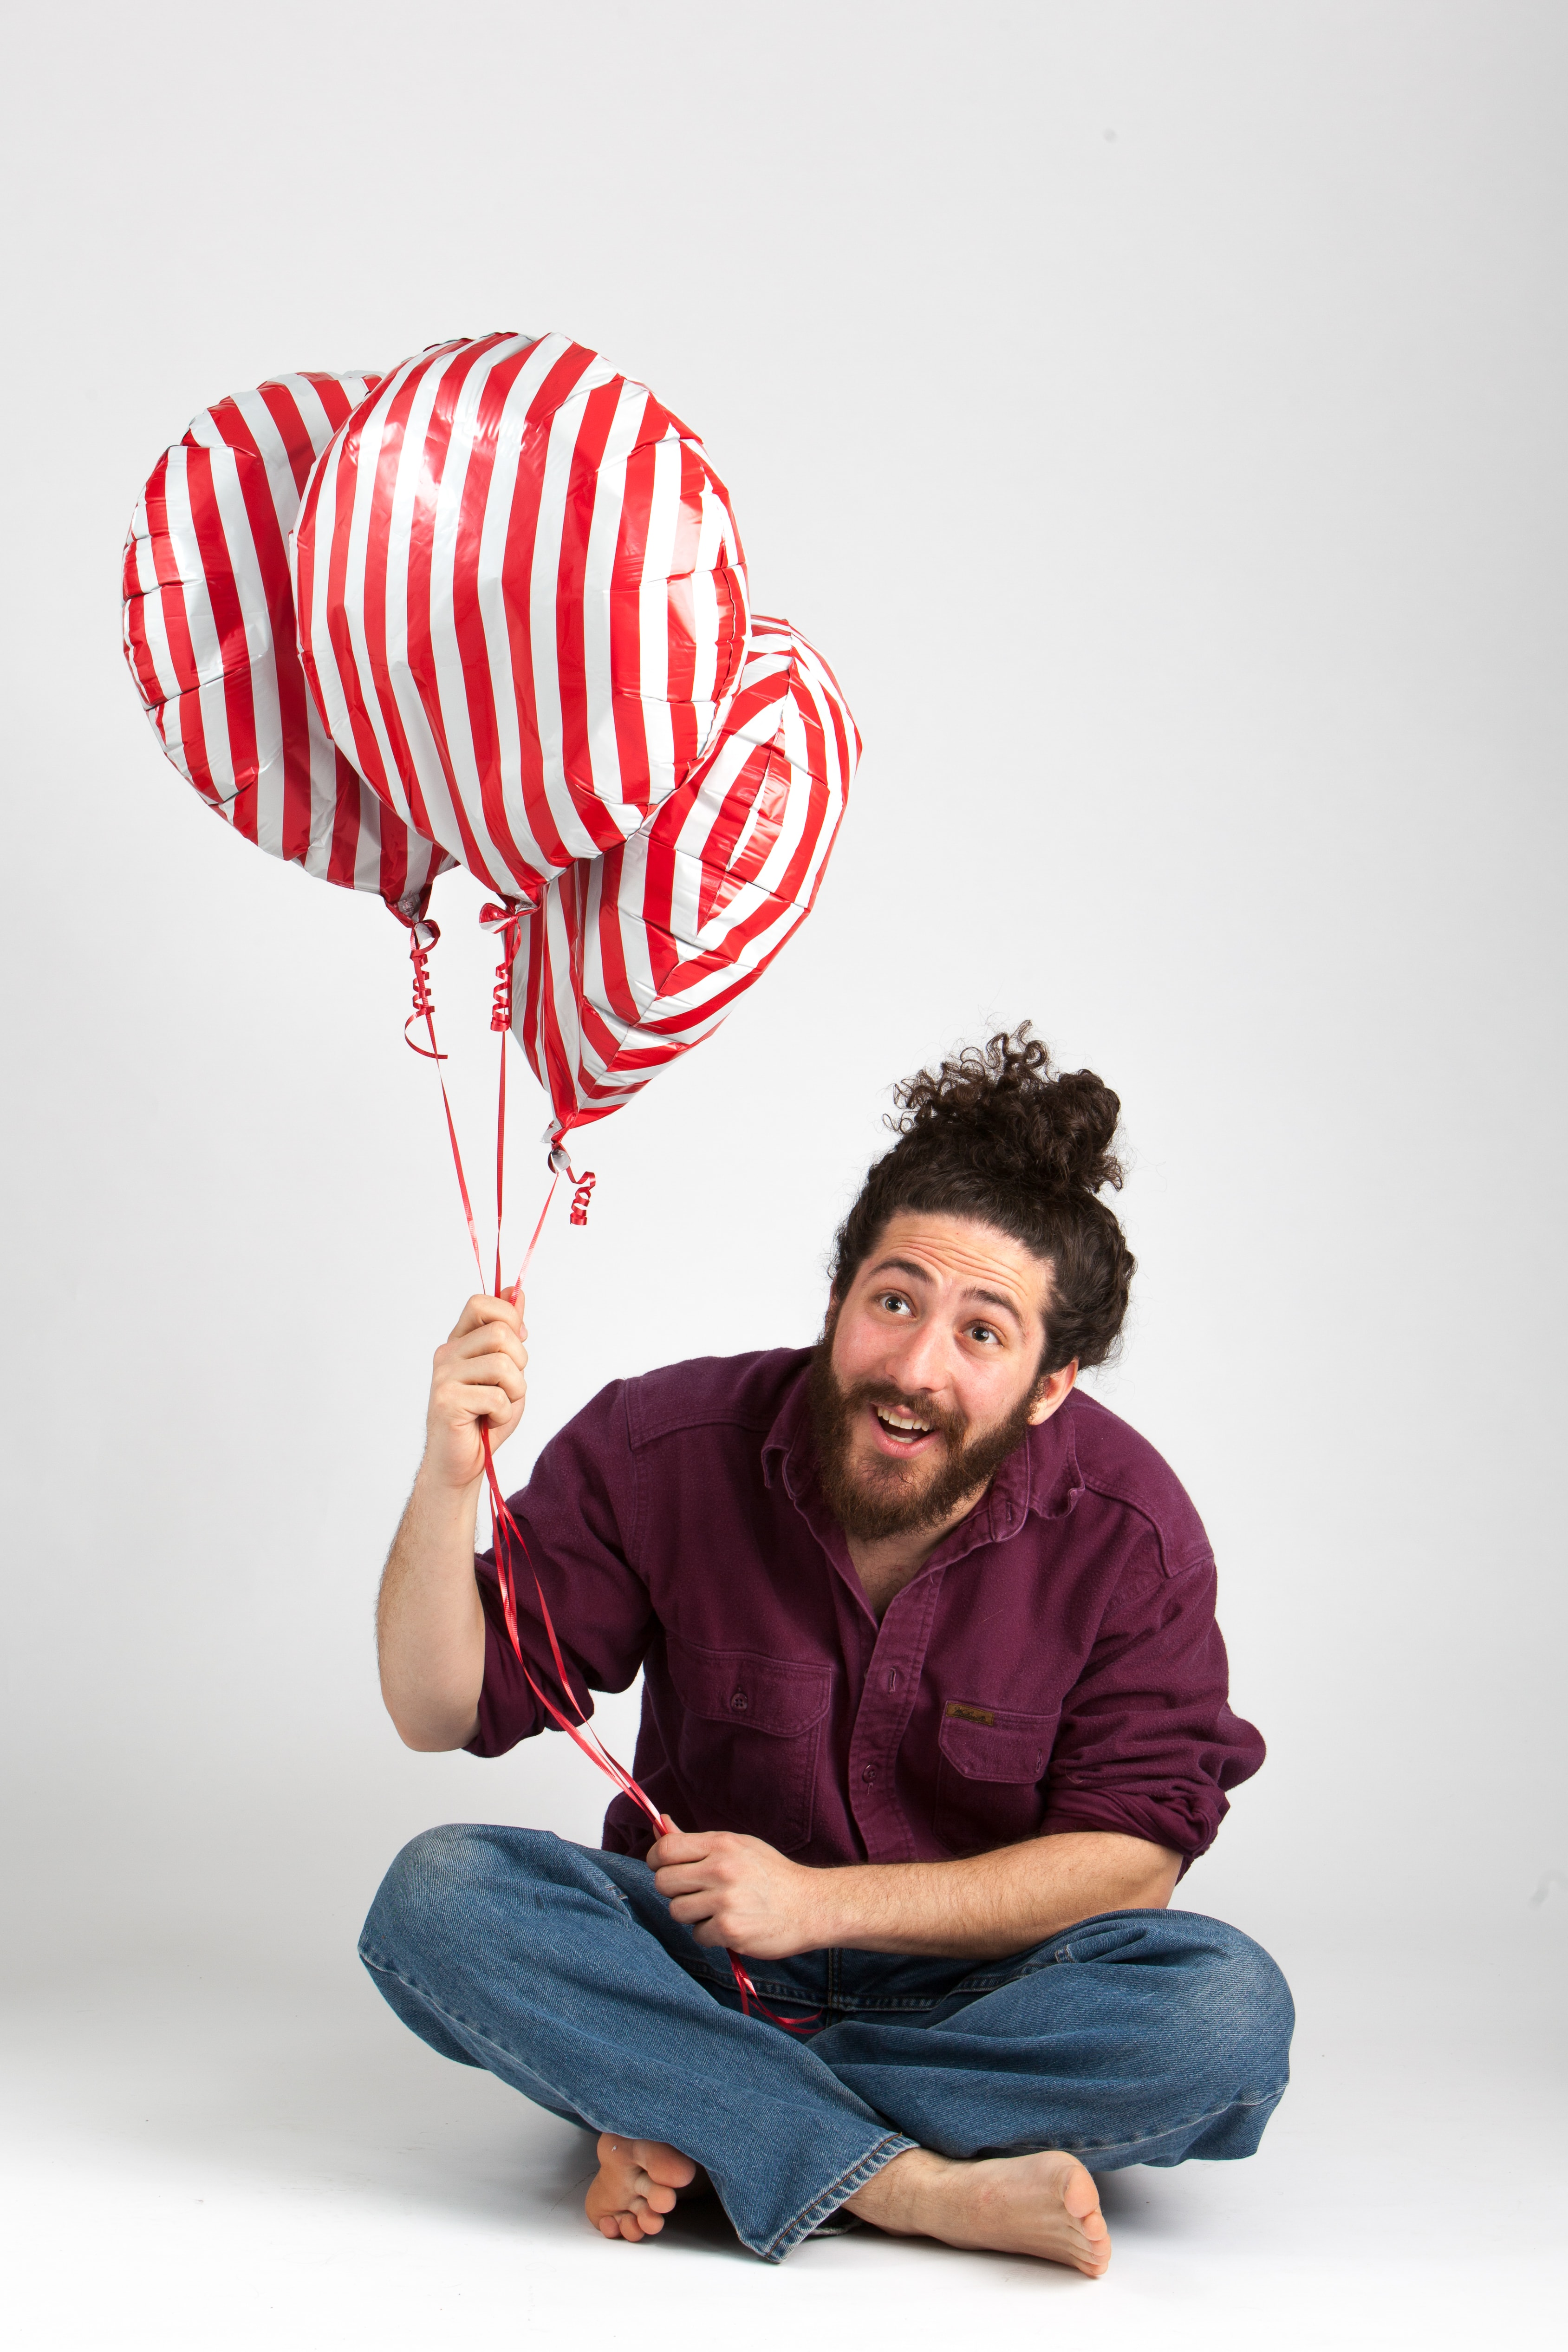 An acting headshot for a comedian with baloons.